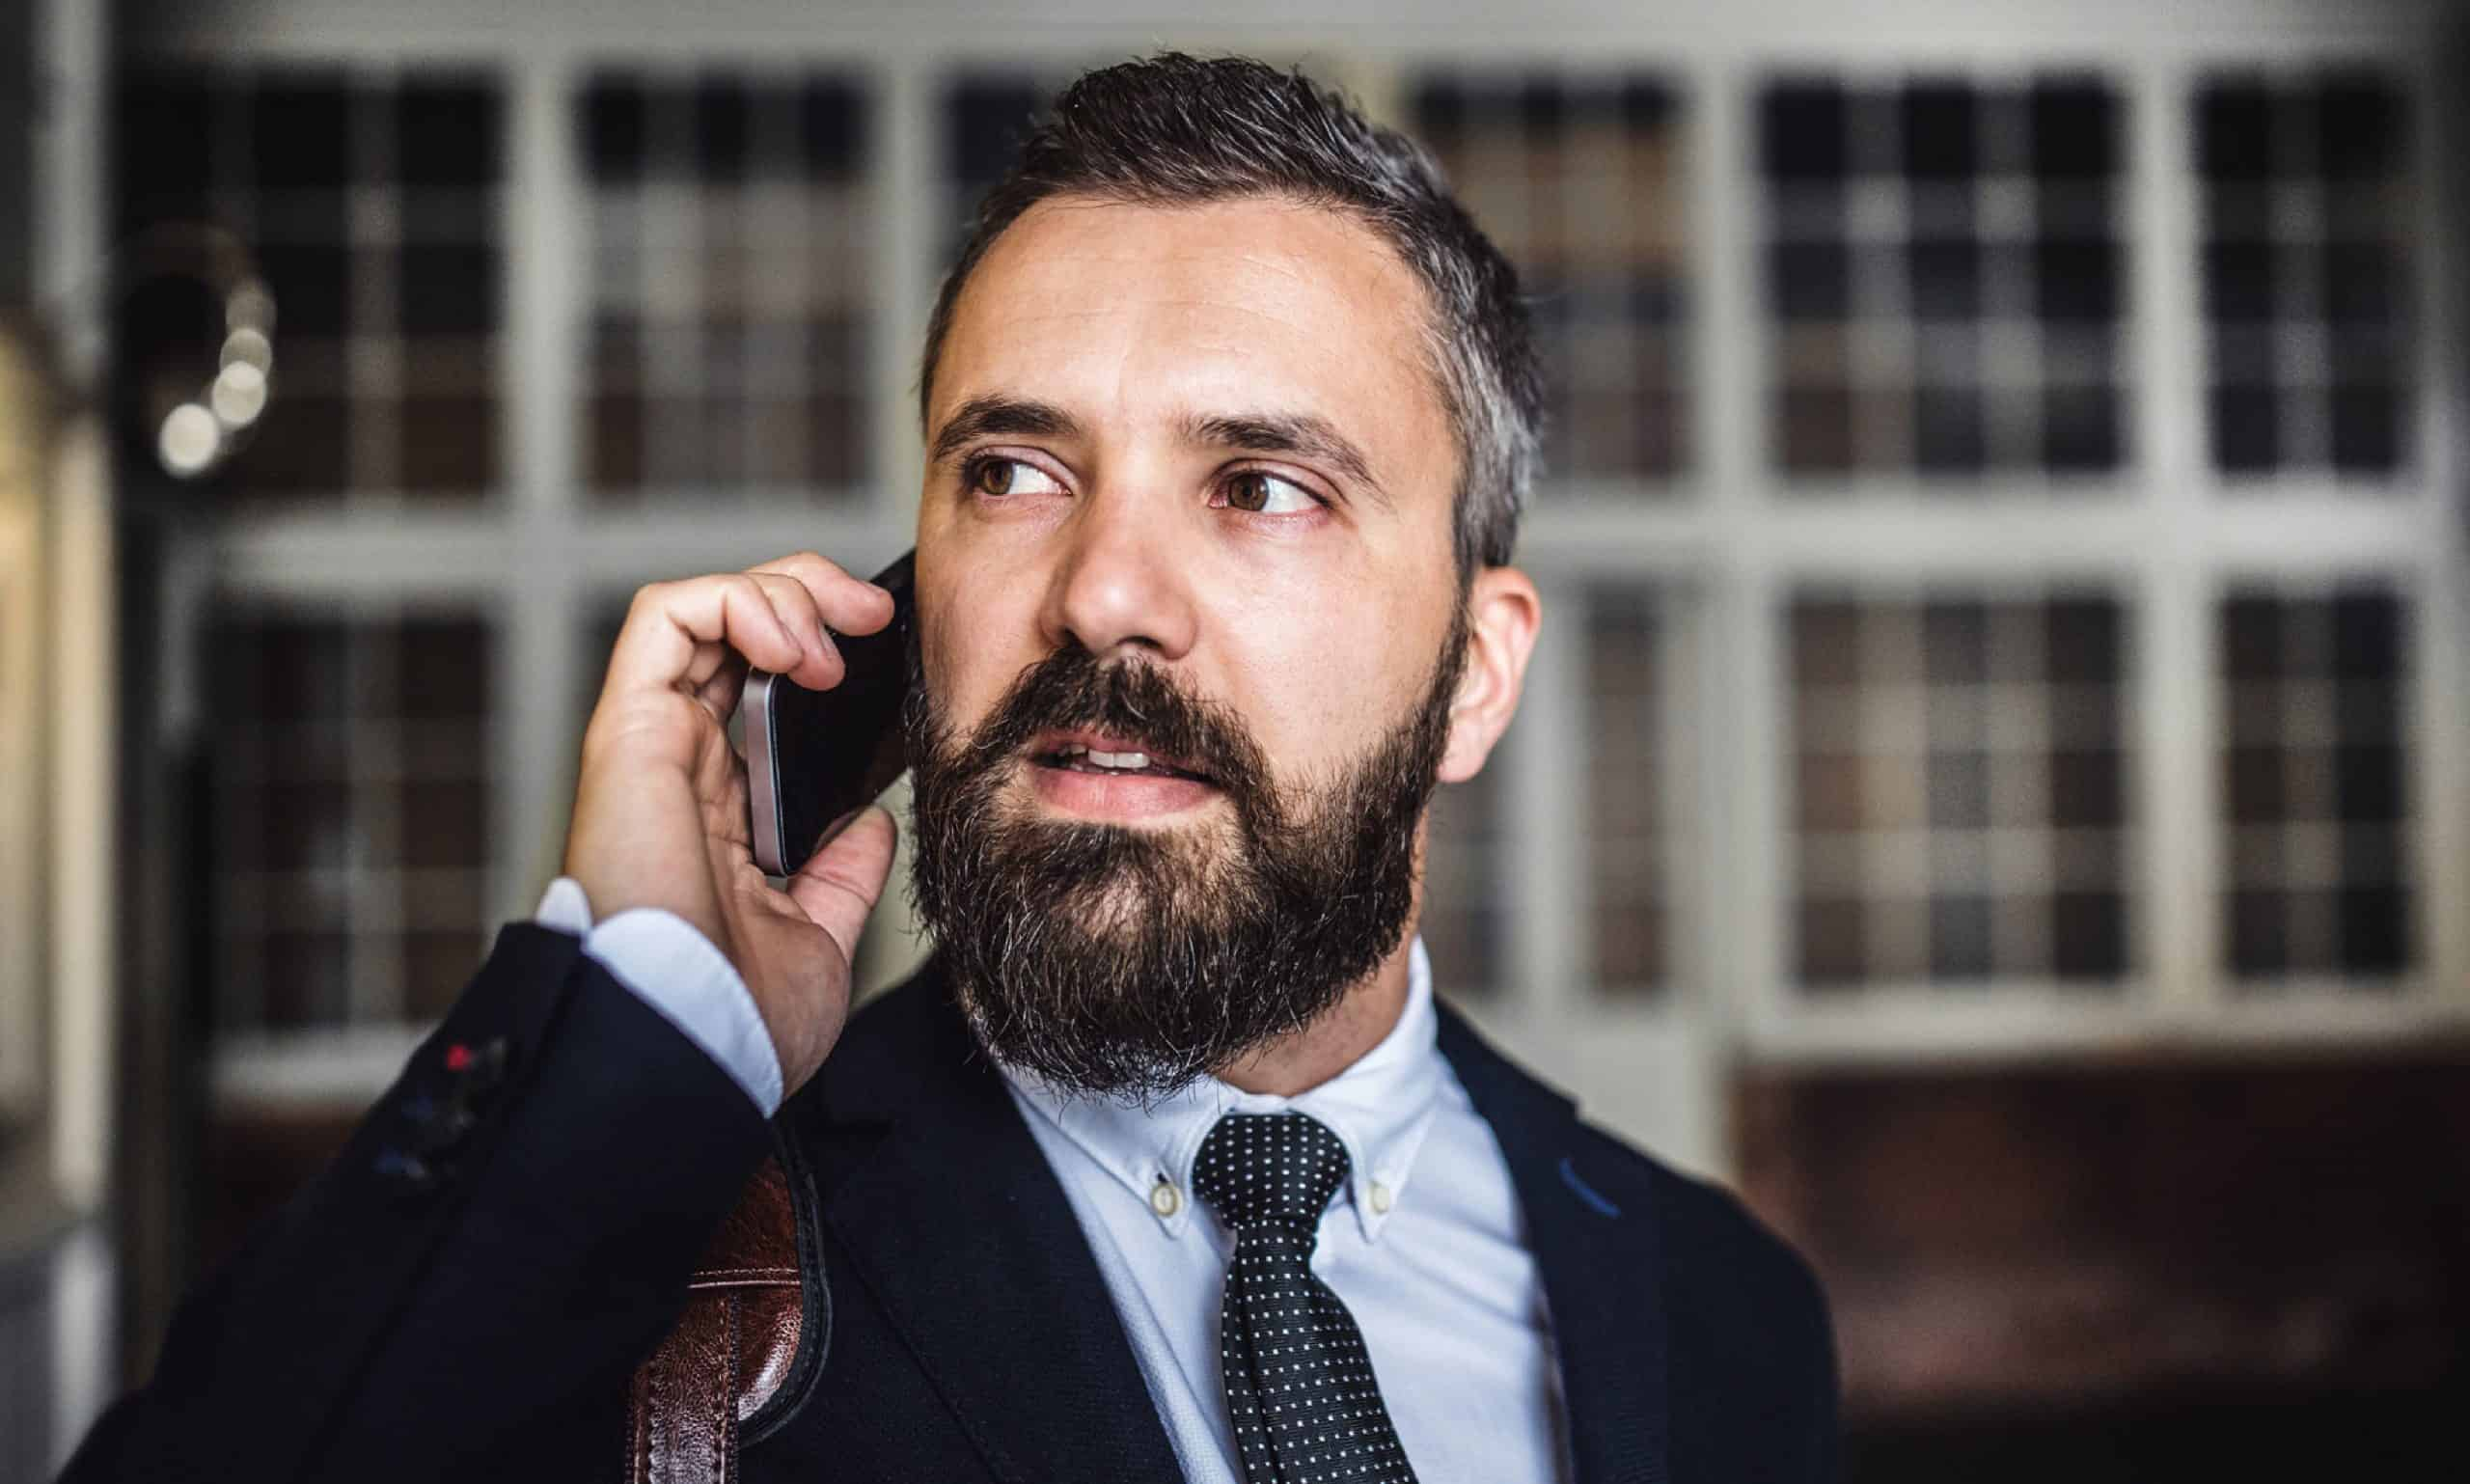 a-close-up-of-businessman-with-smartphone-SwitchVoip